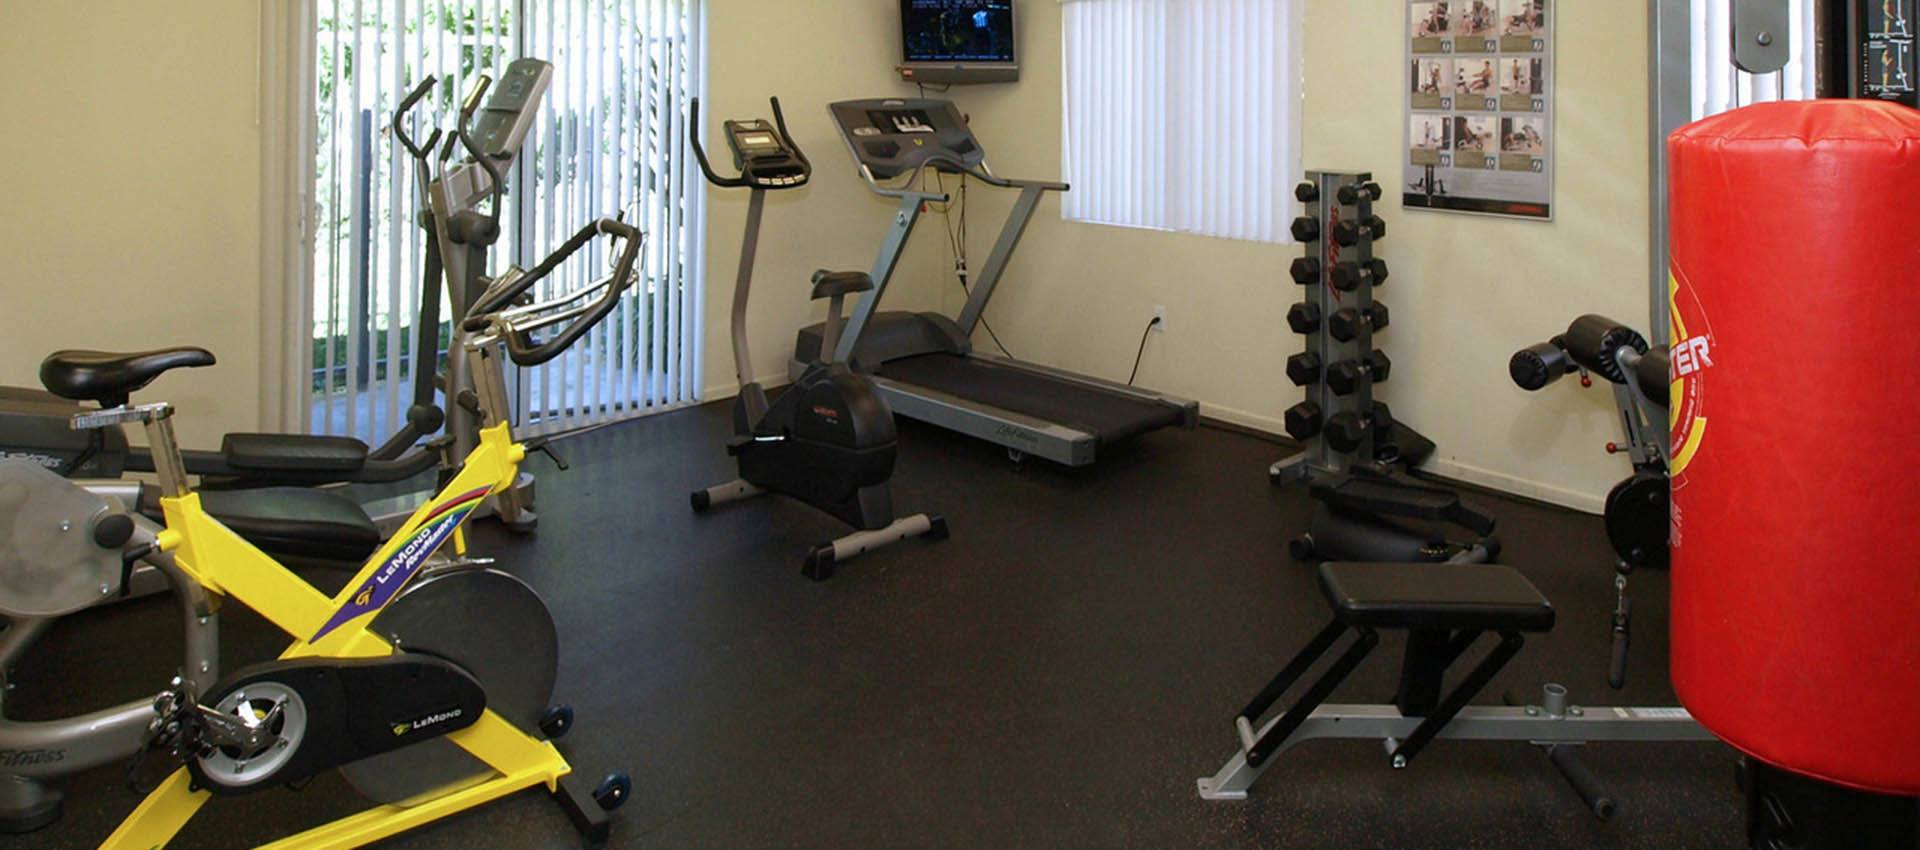 Fitness Equipment at Cypress Villas Apartment Homes in Redlands, CA